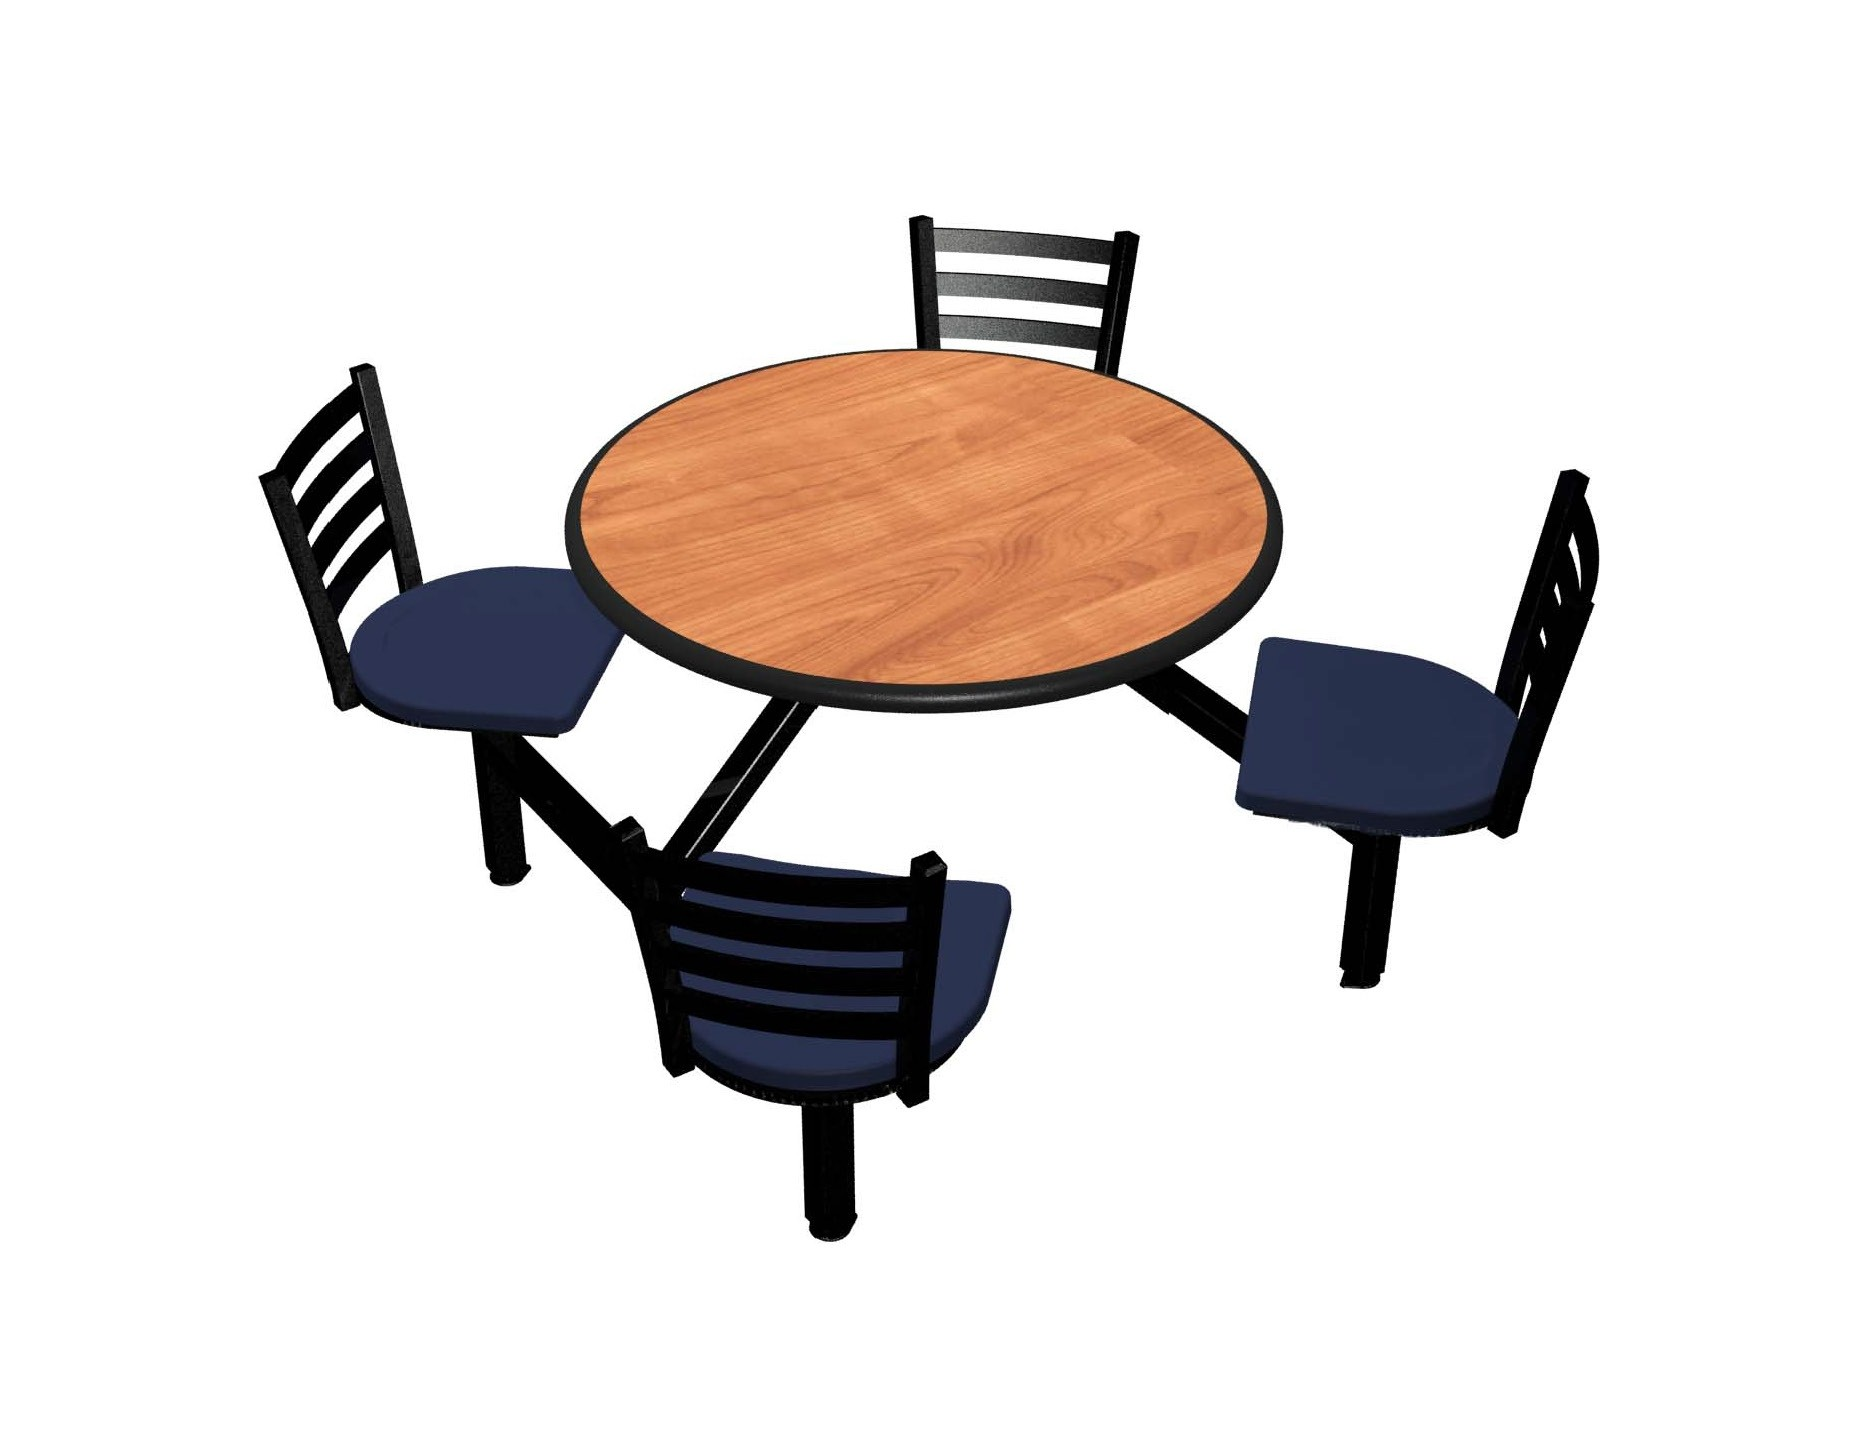 Wild Cherry laminate table top, Black Dur-A-Edge® , Encore chairhead with Atlantis seat